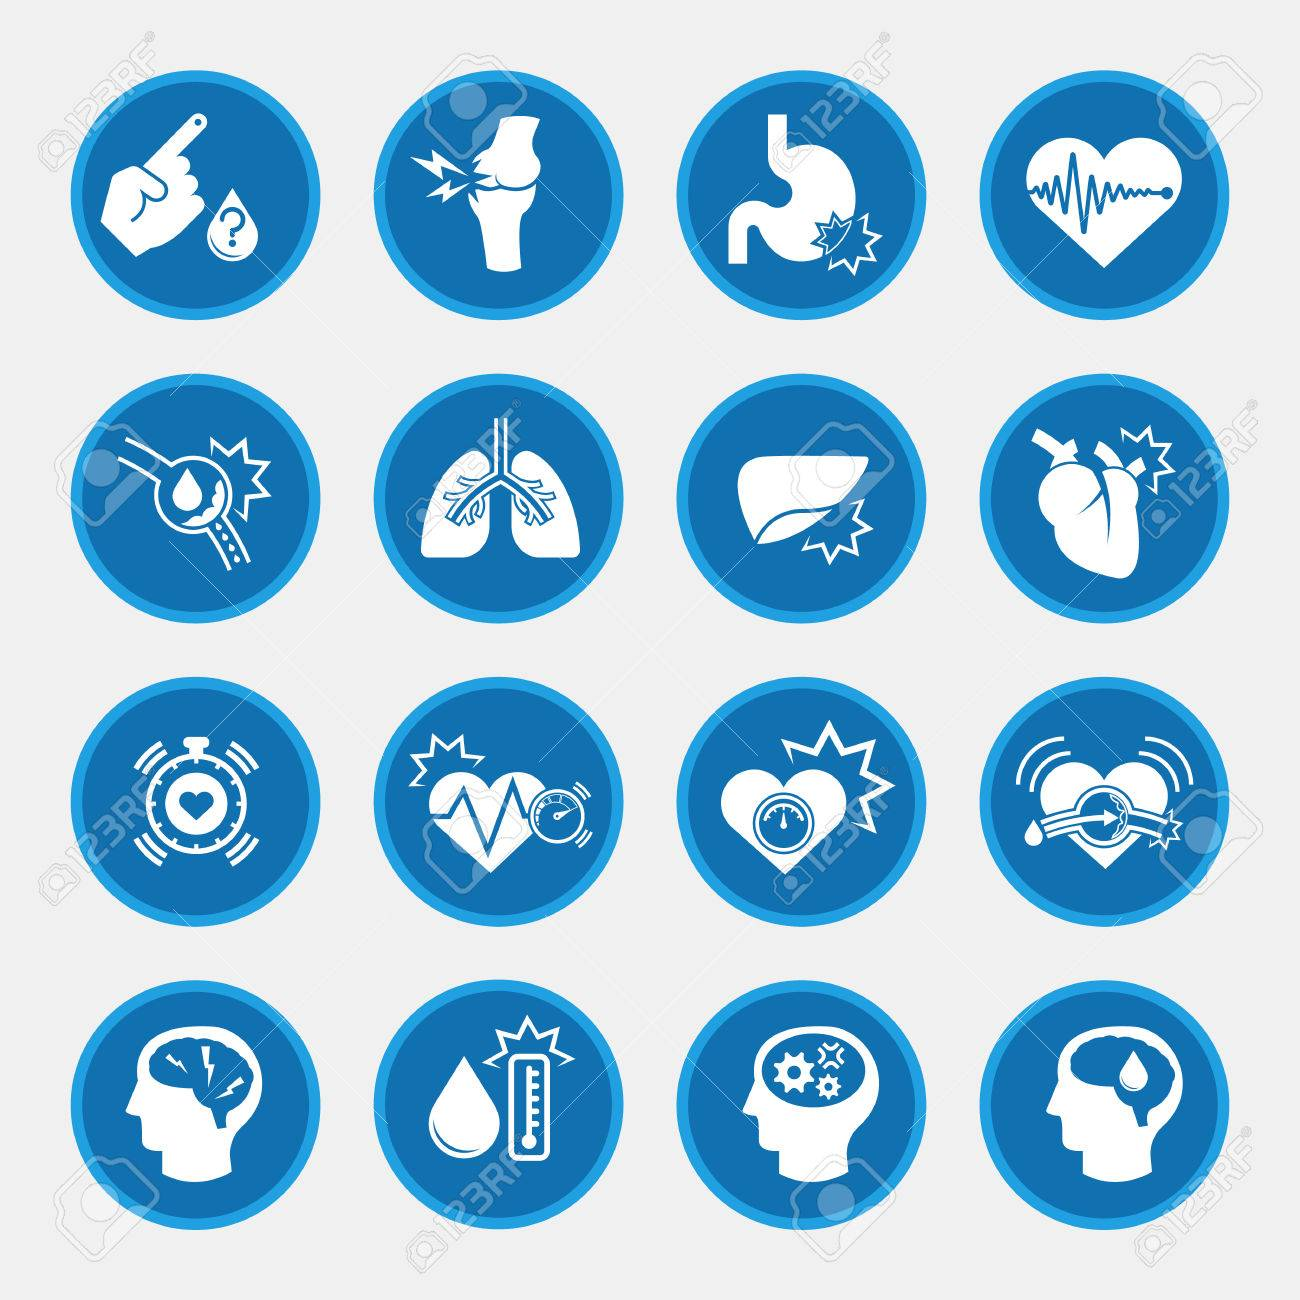 obesity related diseases icons with blue circle button - 65849111